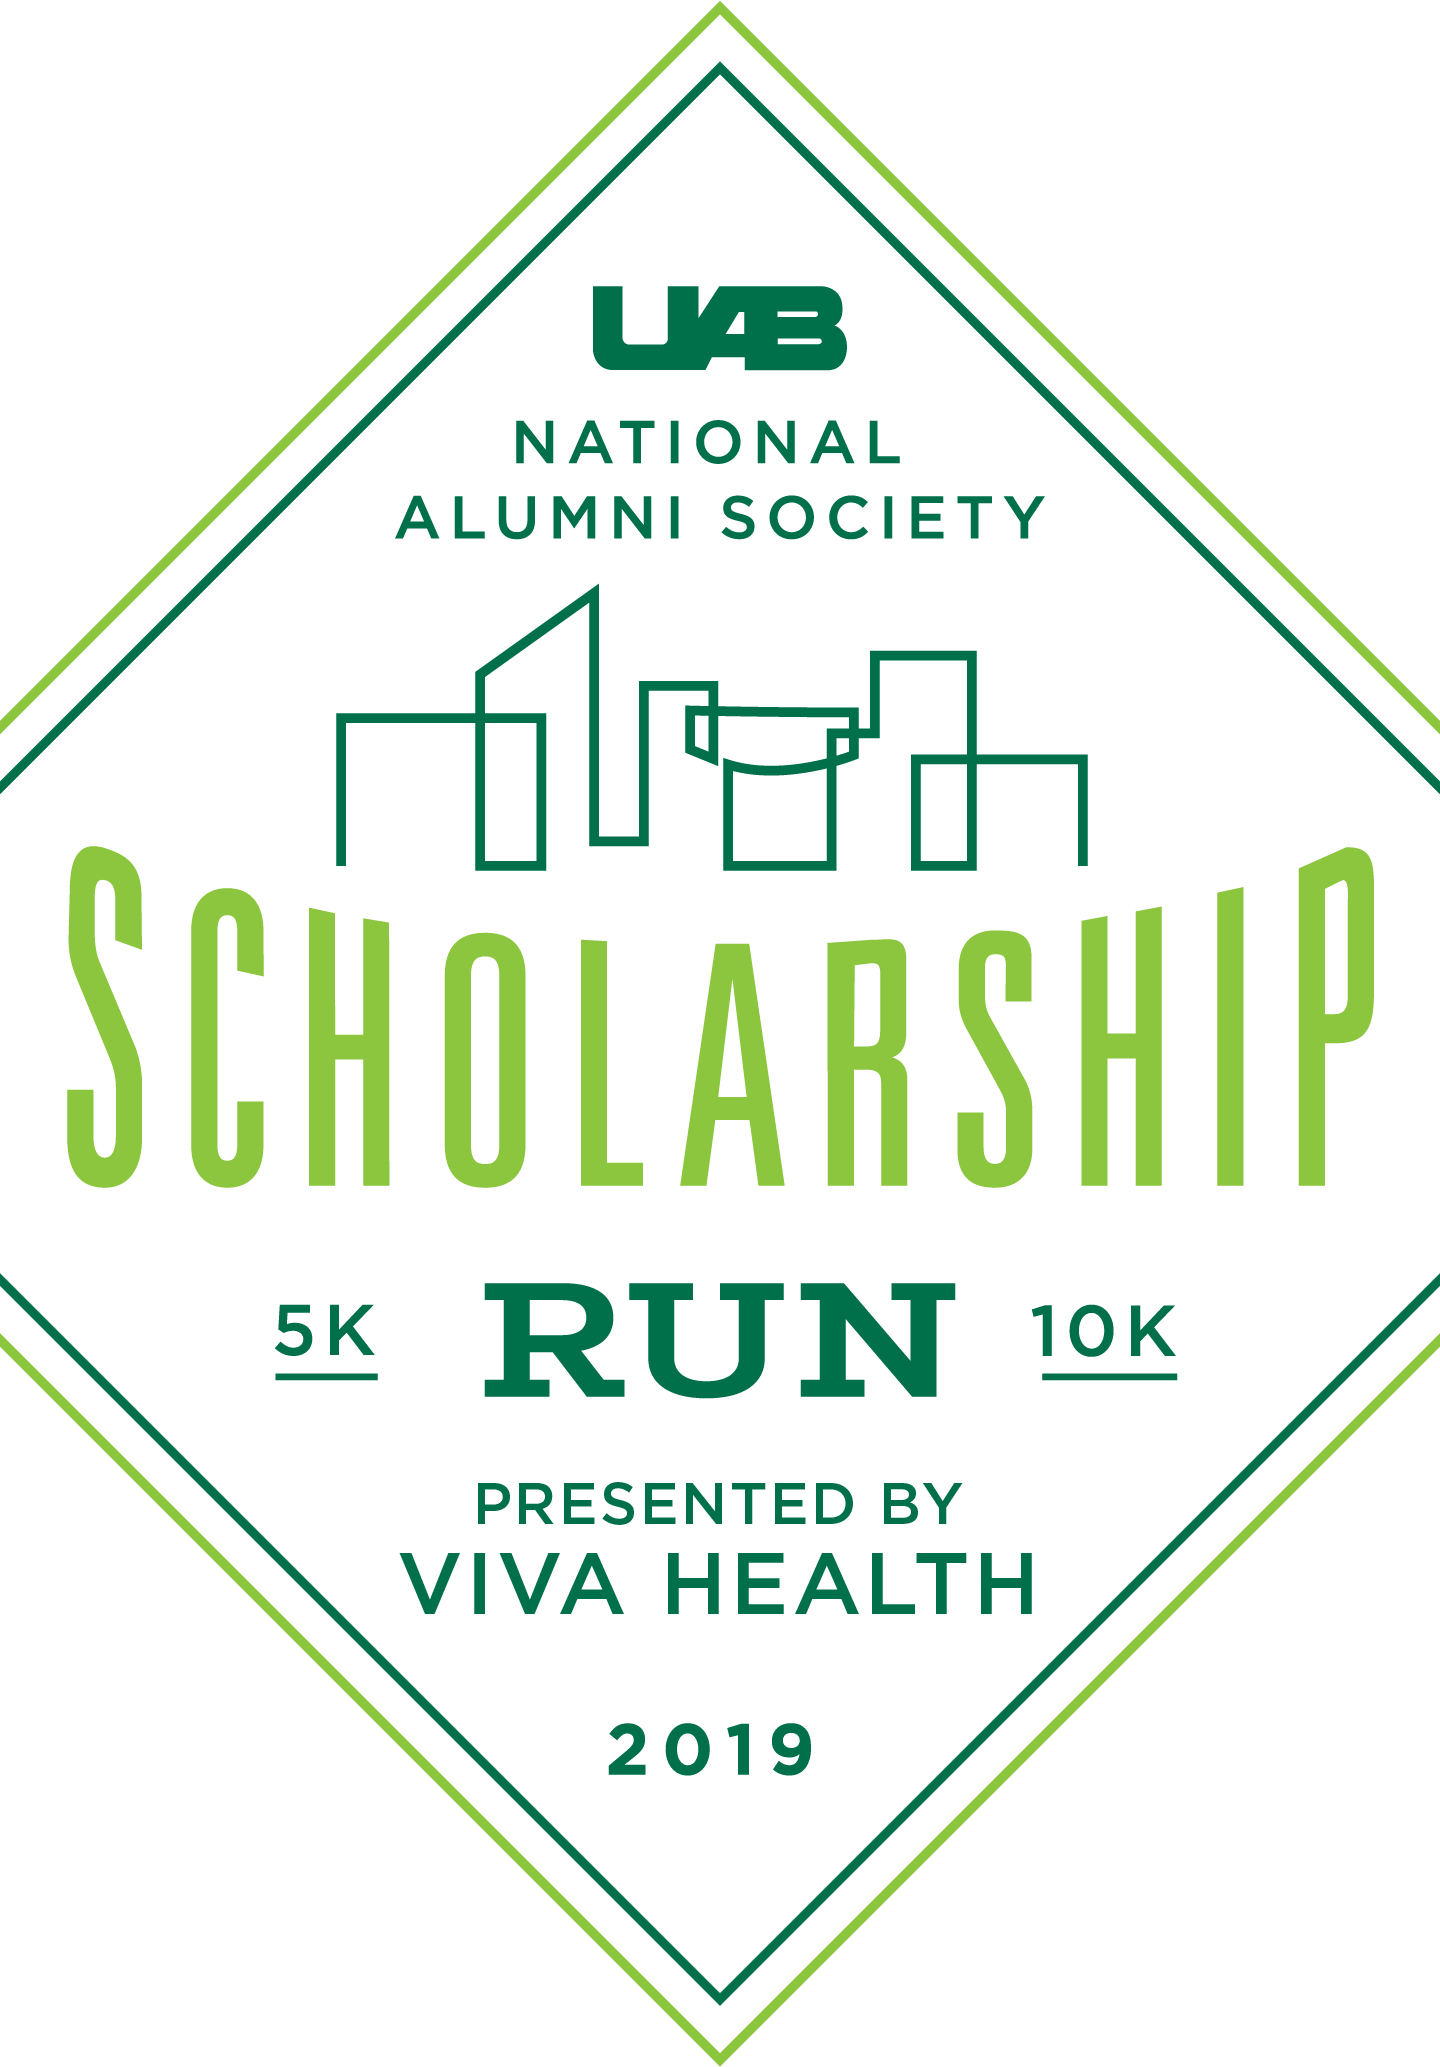 Uab 2019 Calendar Mark Your Calendar: Lace Up Your Shoes for UAB Scholarship Run